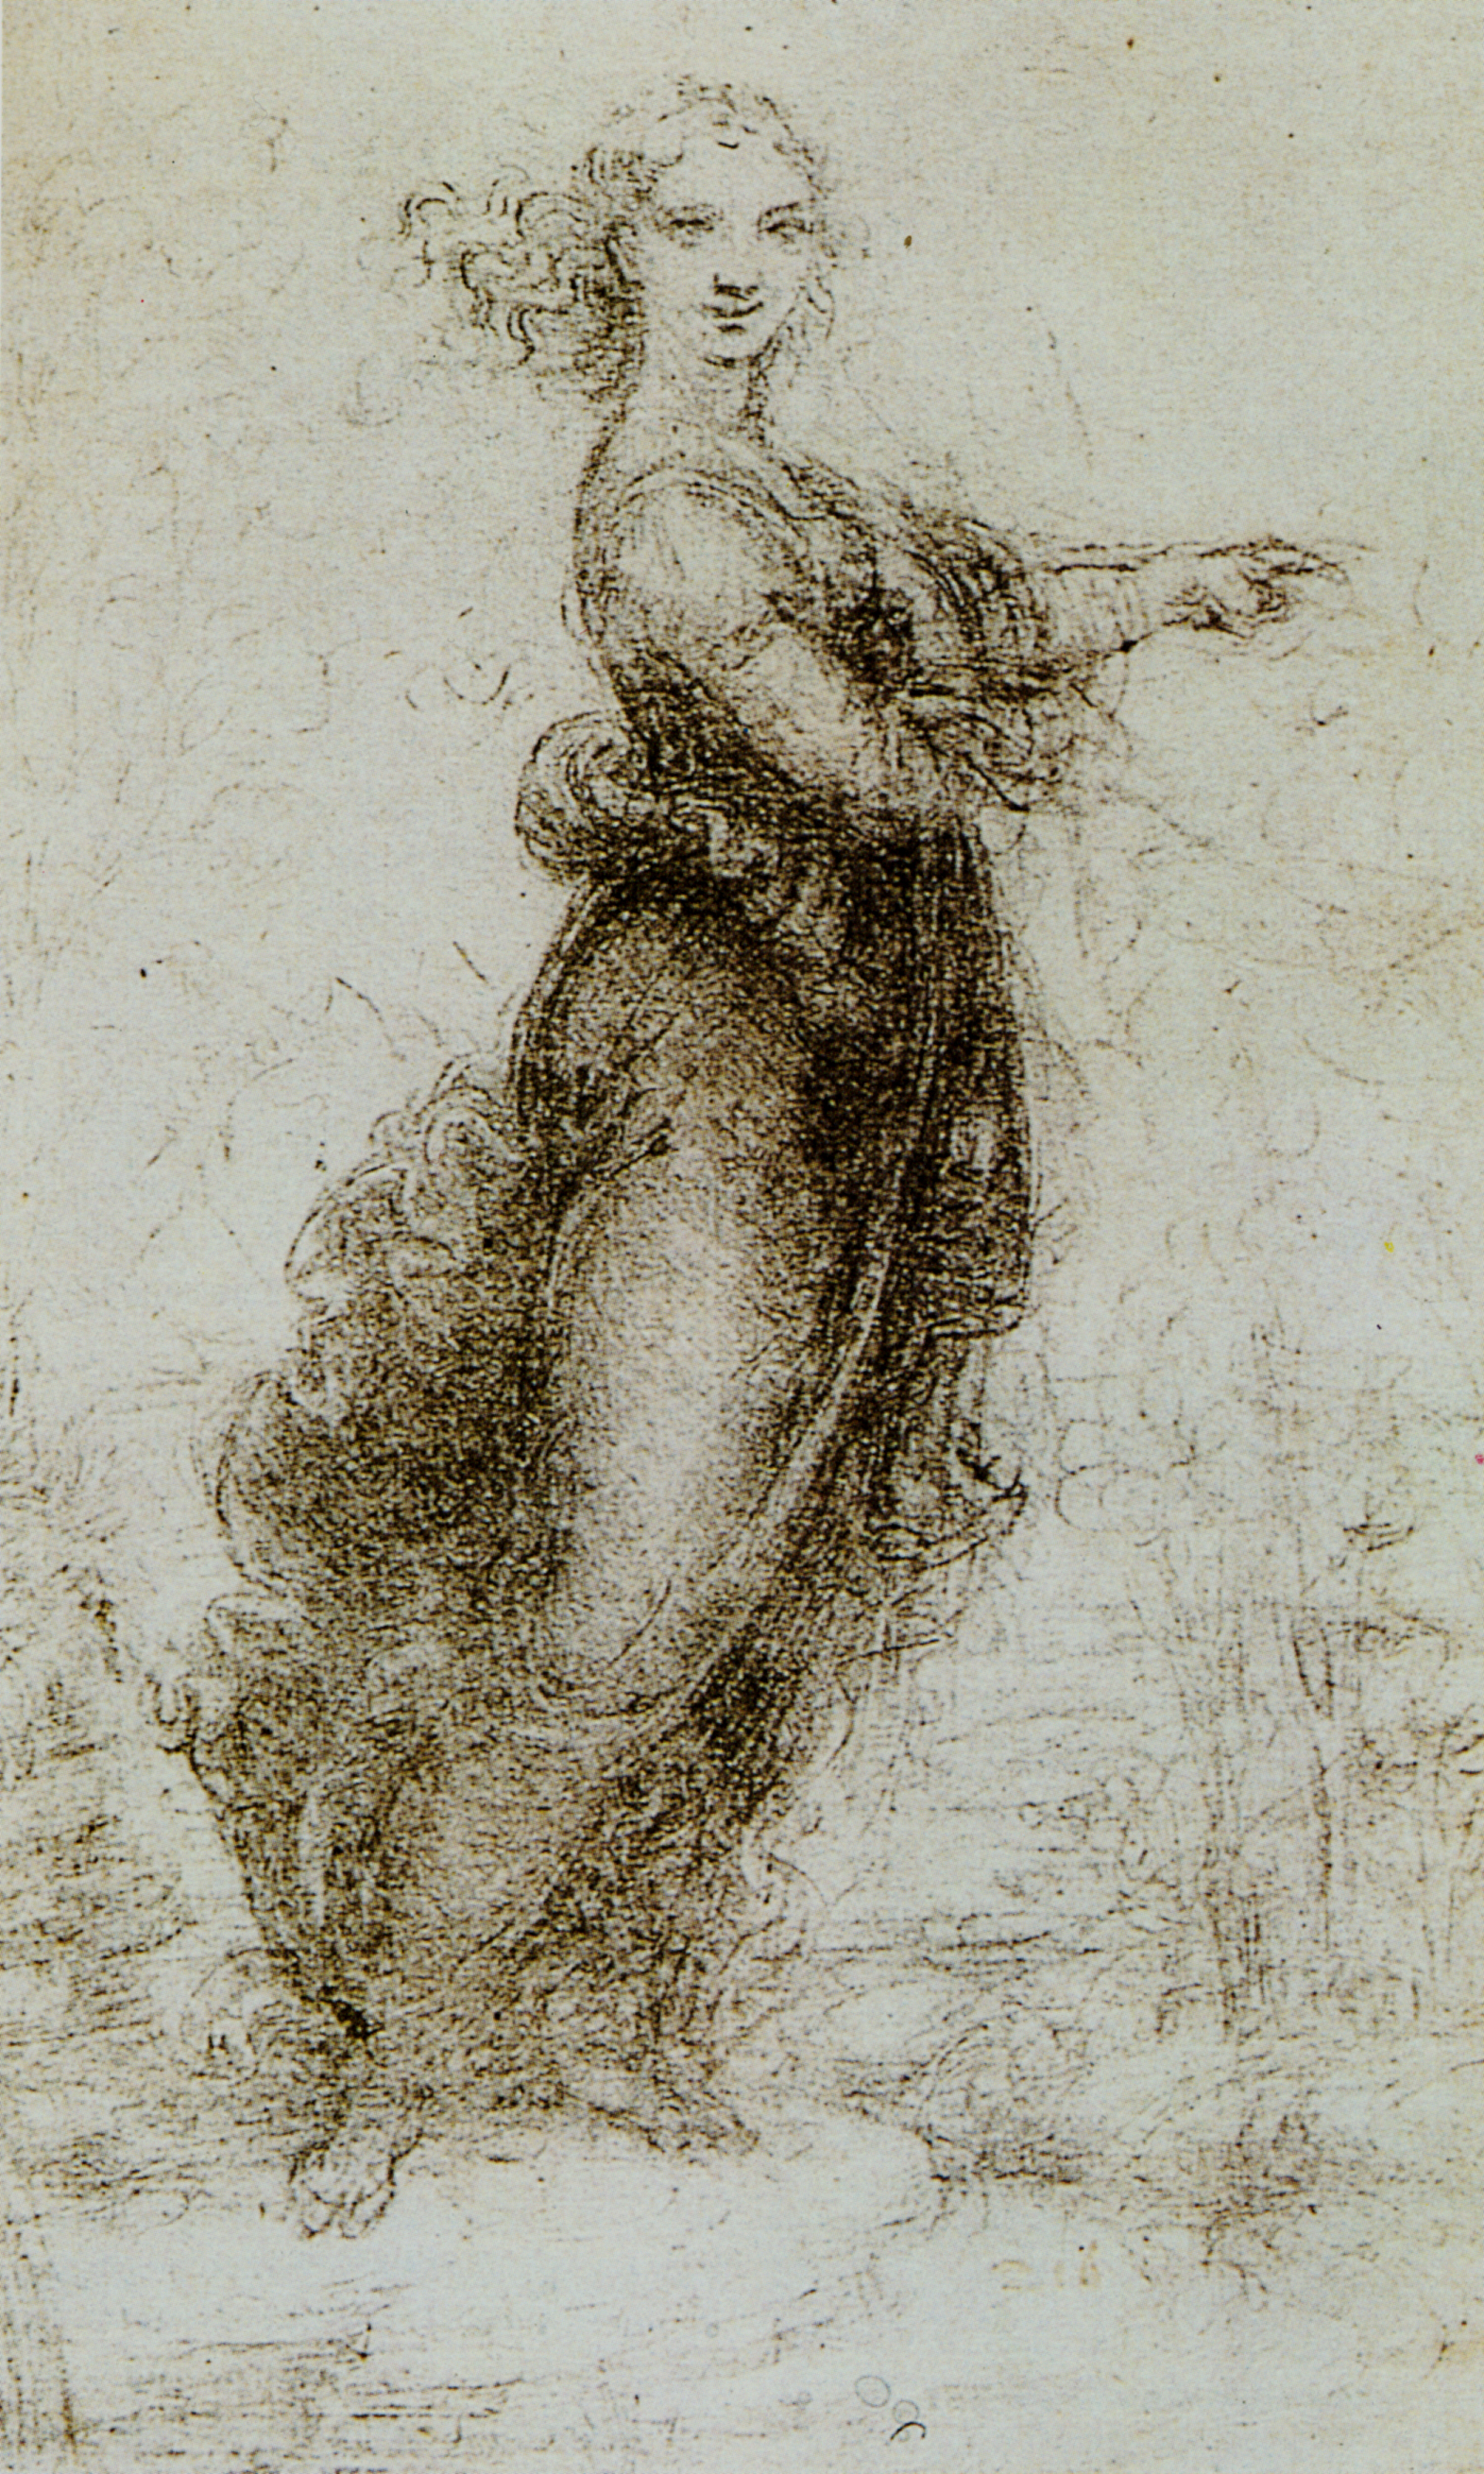 the work of leonardo da vinci From anatomical studies to architectural plans, complex engineering designs to pudgy infant portraits: discover the delicate finesse of one of the most.